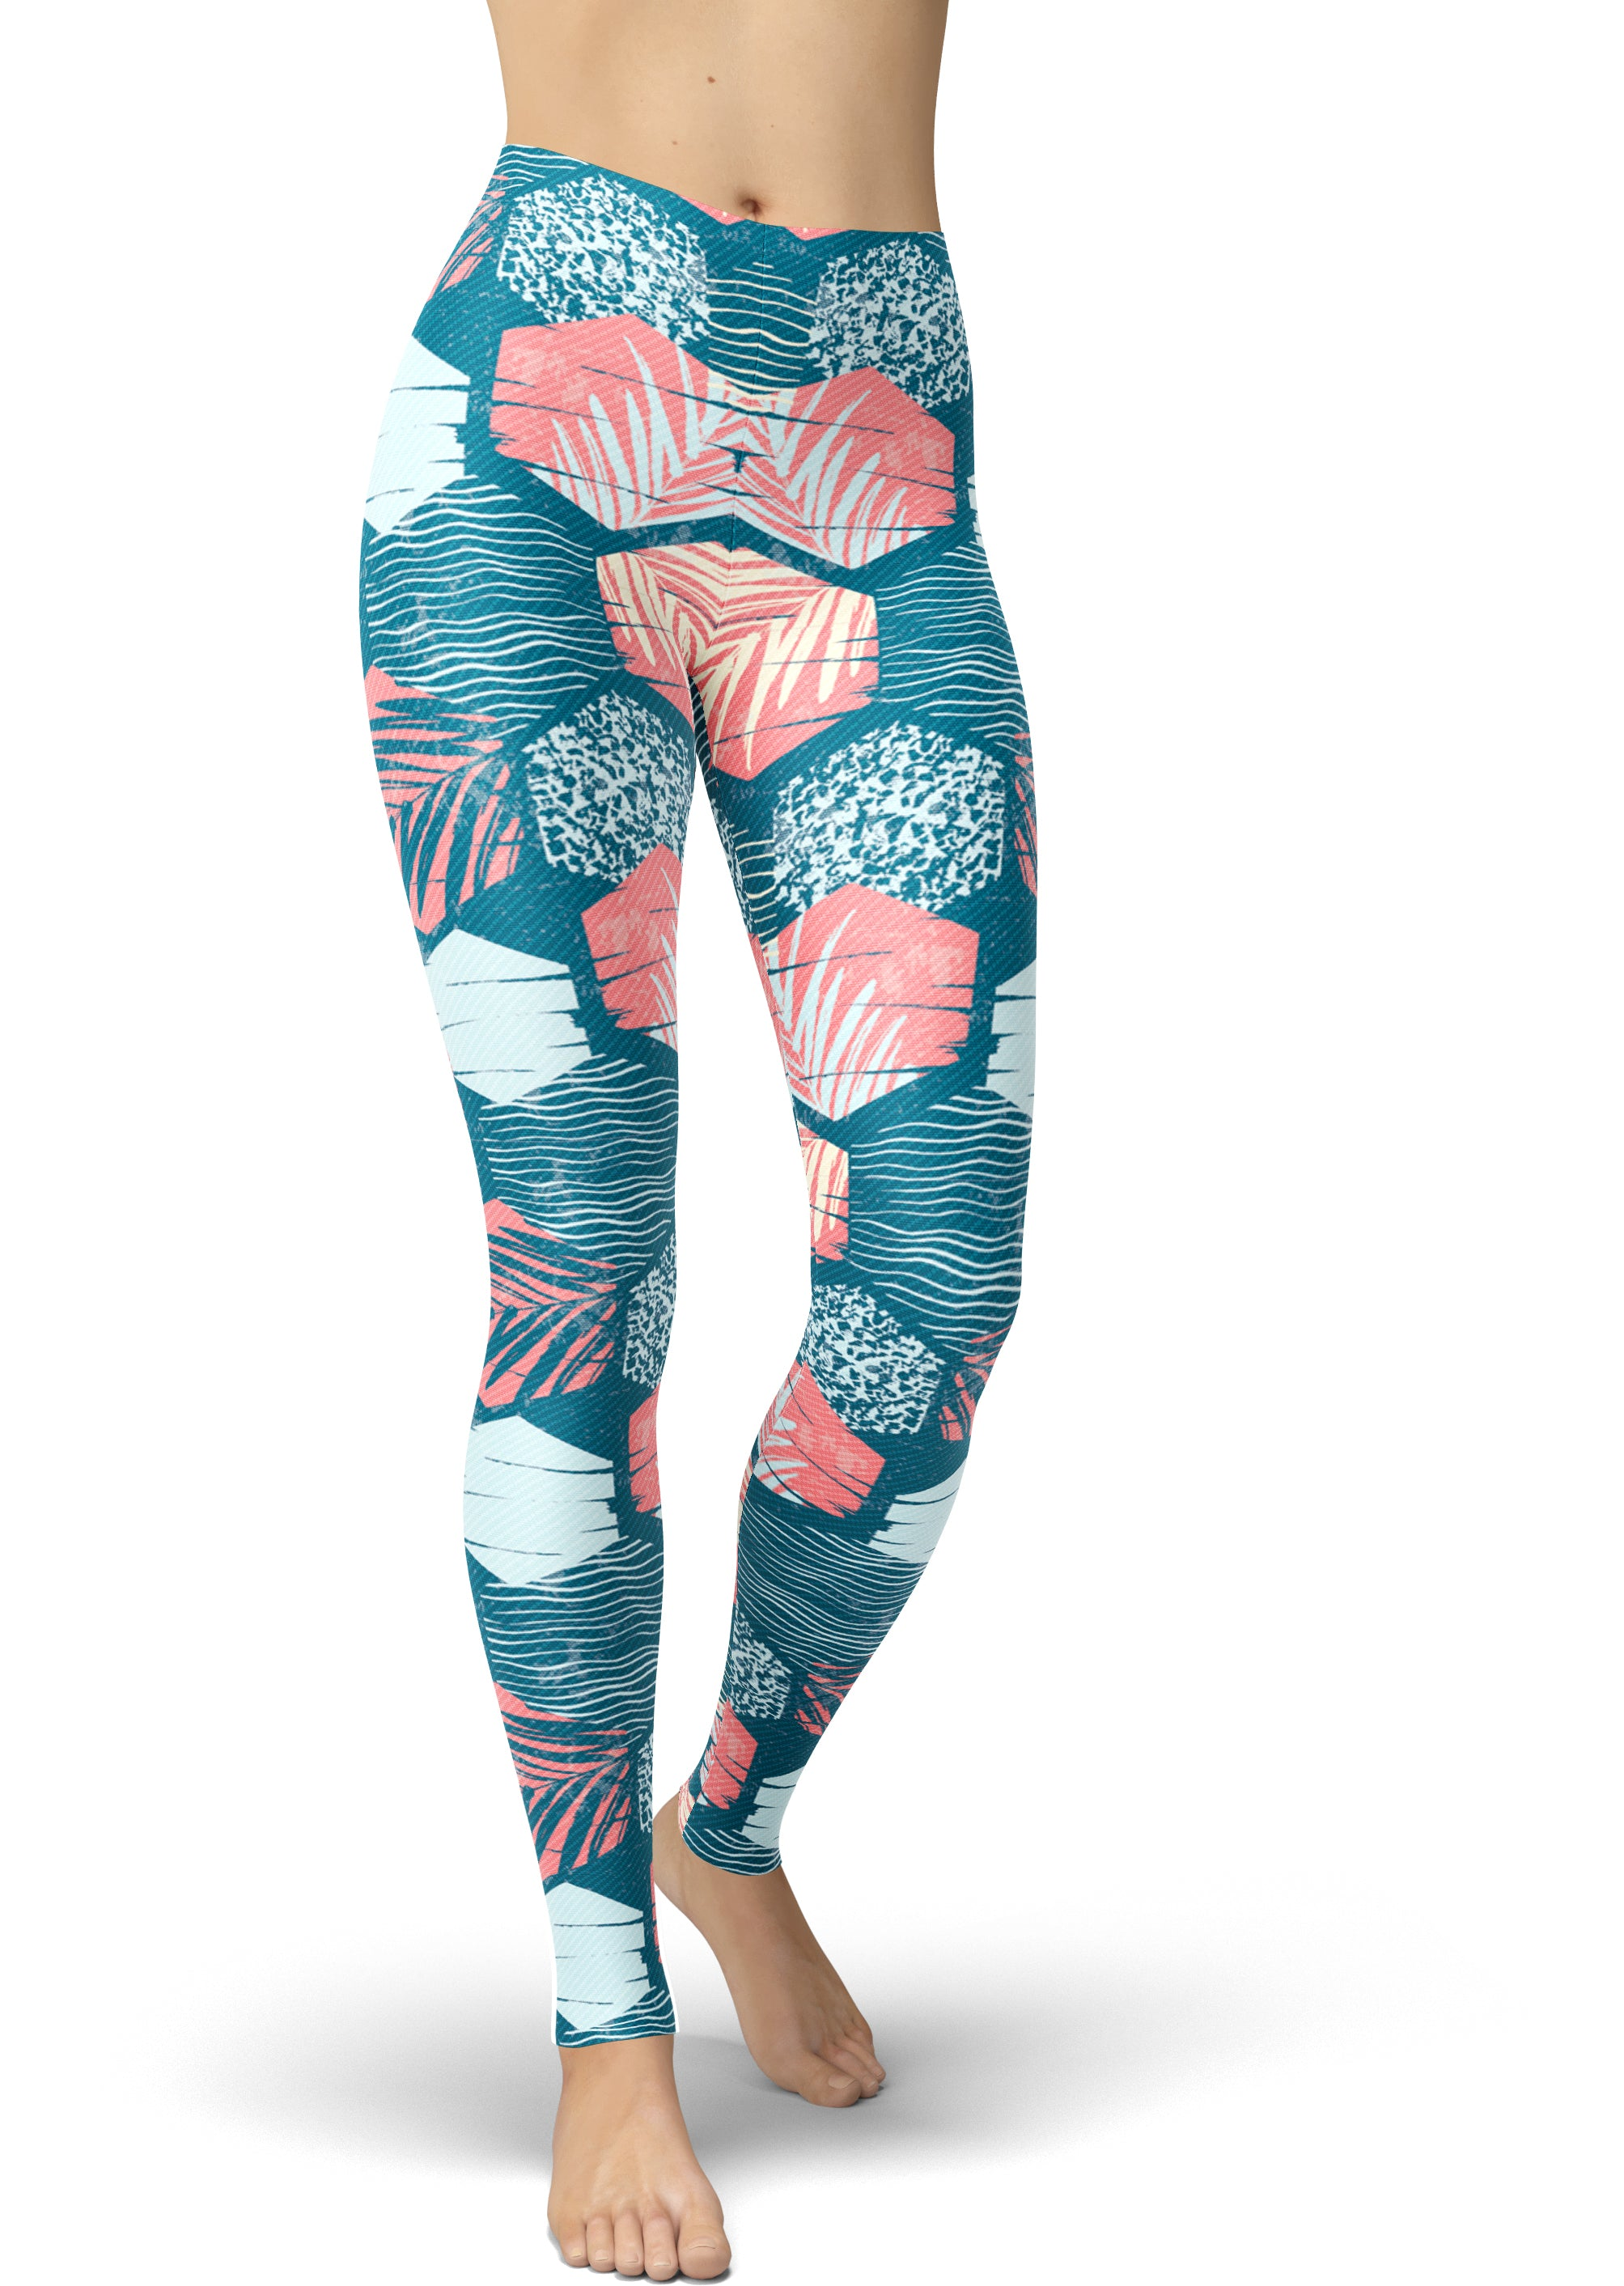 Turquoise & Peach Palm Print Leggings